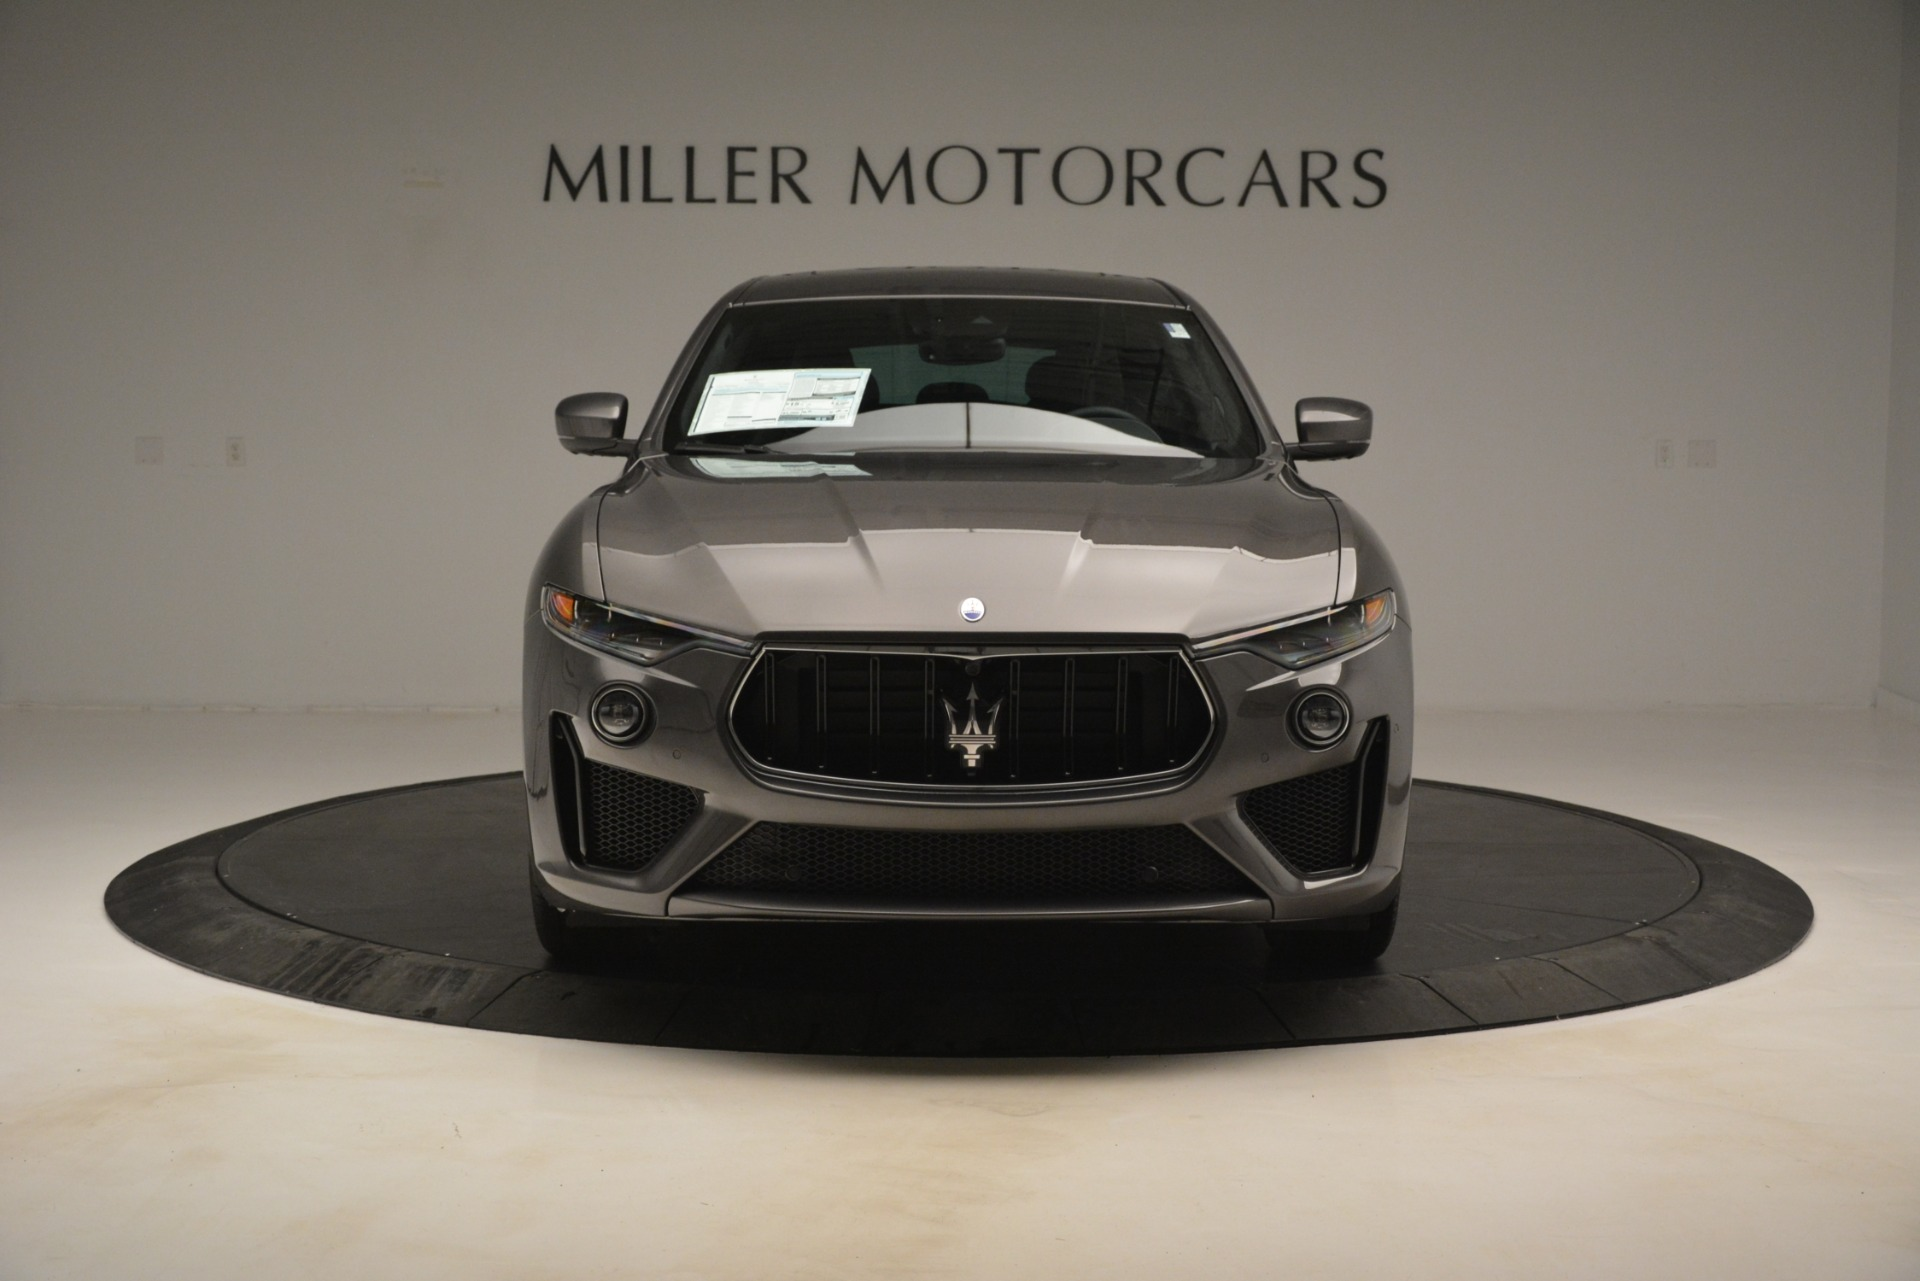 New 2019 Maserati Levante GTS For Sale In Westport, CT 3015_p12